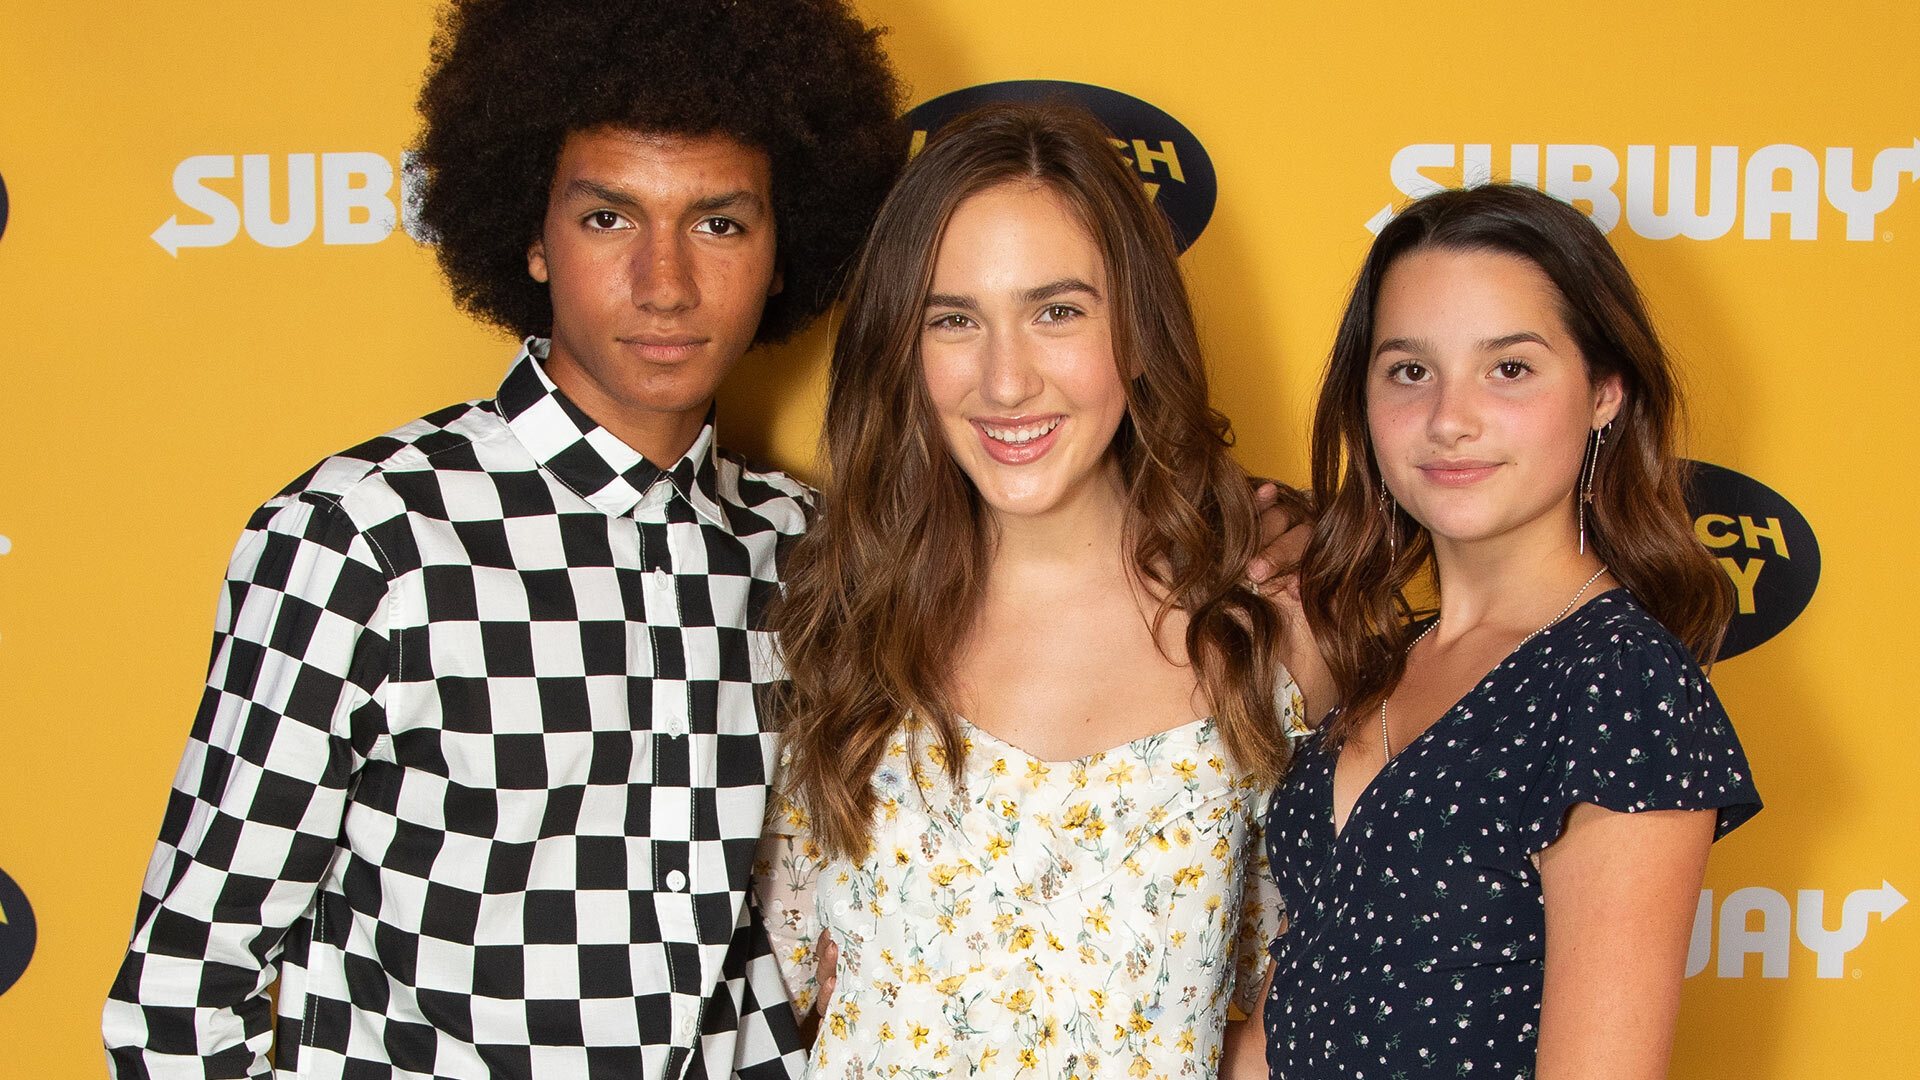 Brat x SUBWAY's Fall Launch Party! - On September 3, the Brat crew (and friends) celebrated the premiere of three exciting fall shows: Chicken Girls, Zoe Valentine, and Total Eclipse!